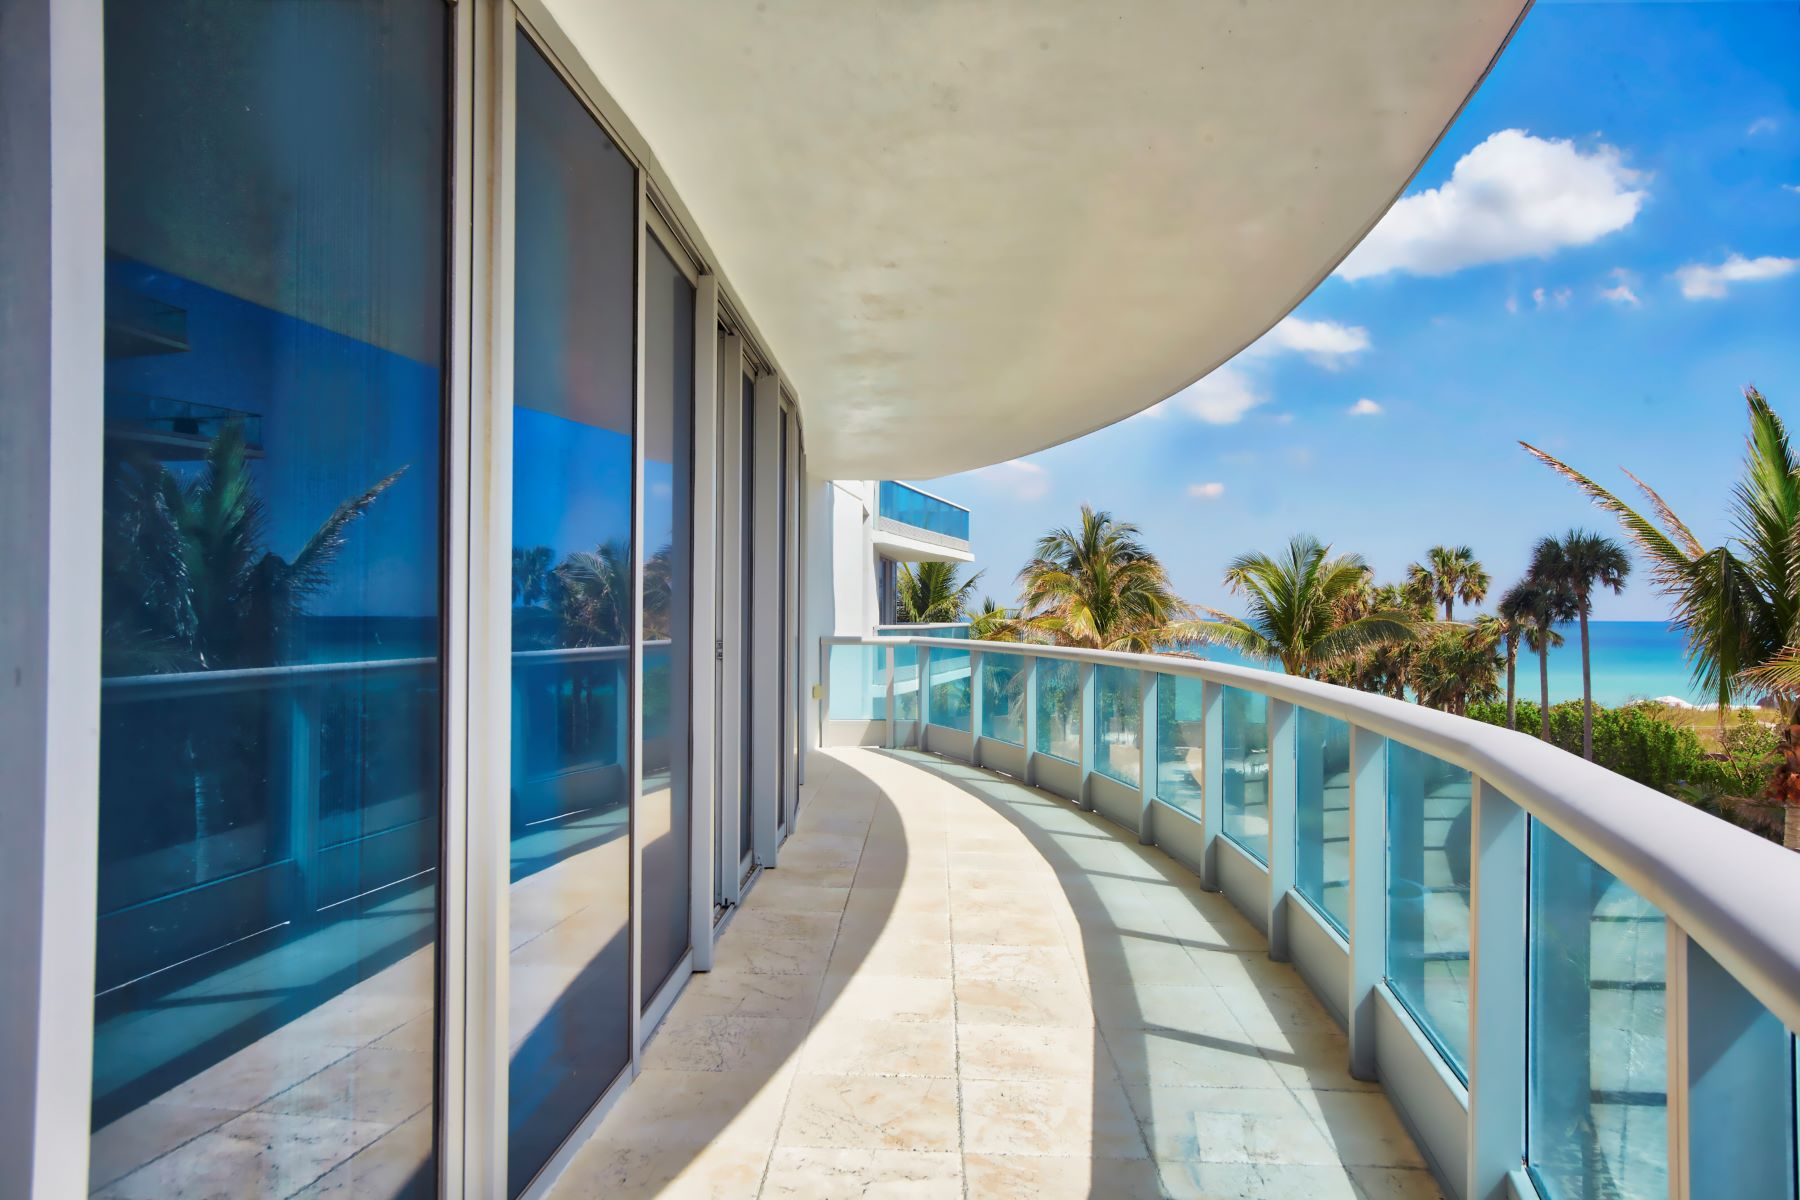 Condominium for Sale at 9401 Collins Ave #304 9401 Collins Ave 304 Surfside, Florida 33154 United States